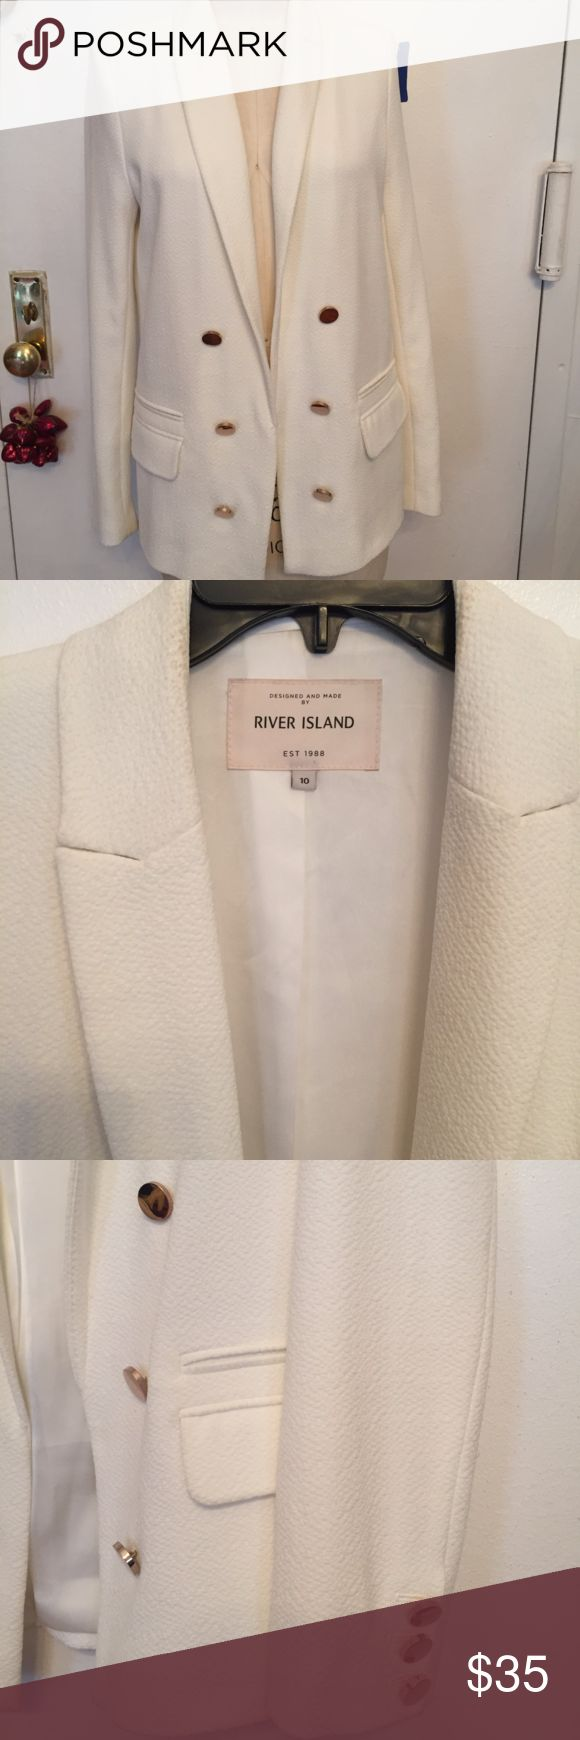 """River Island cream blazer with gold buttons US 6 River Island textured white cream blazer with gold buttons size UK 10 US 6 EUR 36  Excellent condition.   Dry clean only.  Has faux double breasted buttons  Measurements: Shoulder to shoulder back: 15.25"""" Nape to hem: 26"""" Sleeve shoulder to cuff: 26"""" Armpit to armpit flat: 18.5""""  Feel free to ask any questions River Island Jackets & Coats Blazers"""